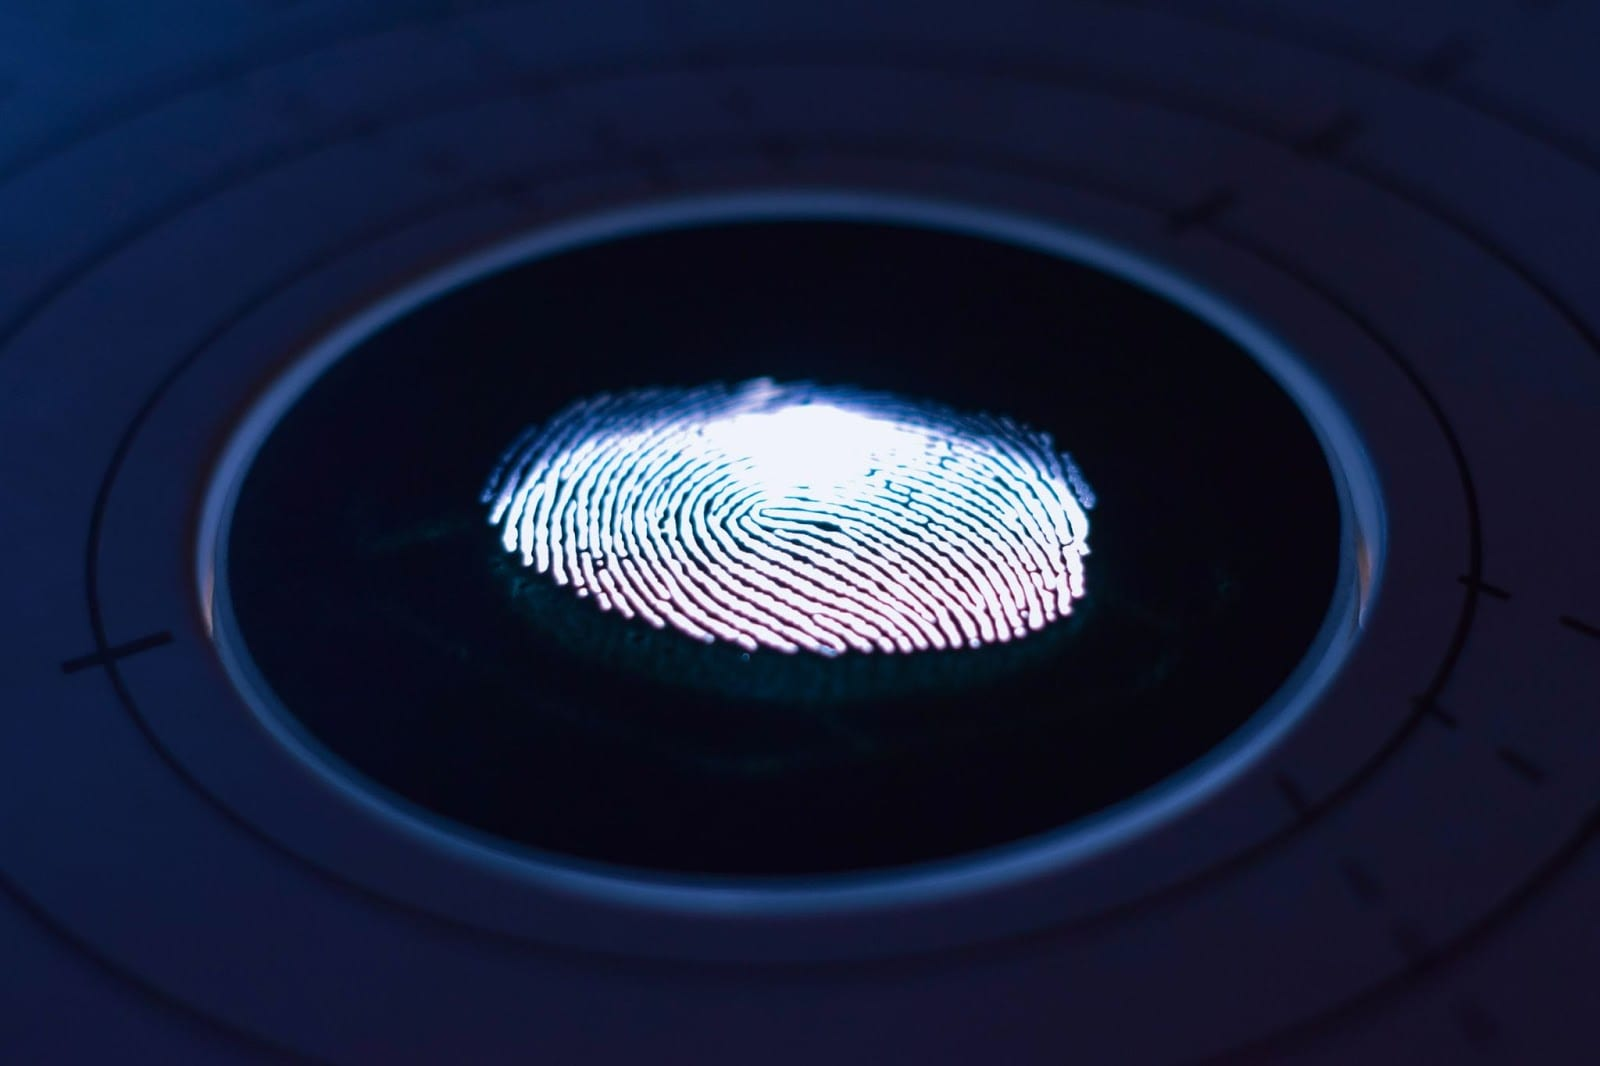 How to Prevent Fraud with Device Fingerprinting